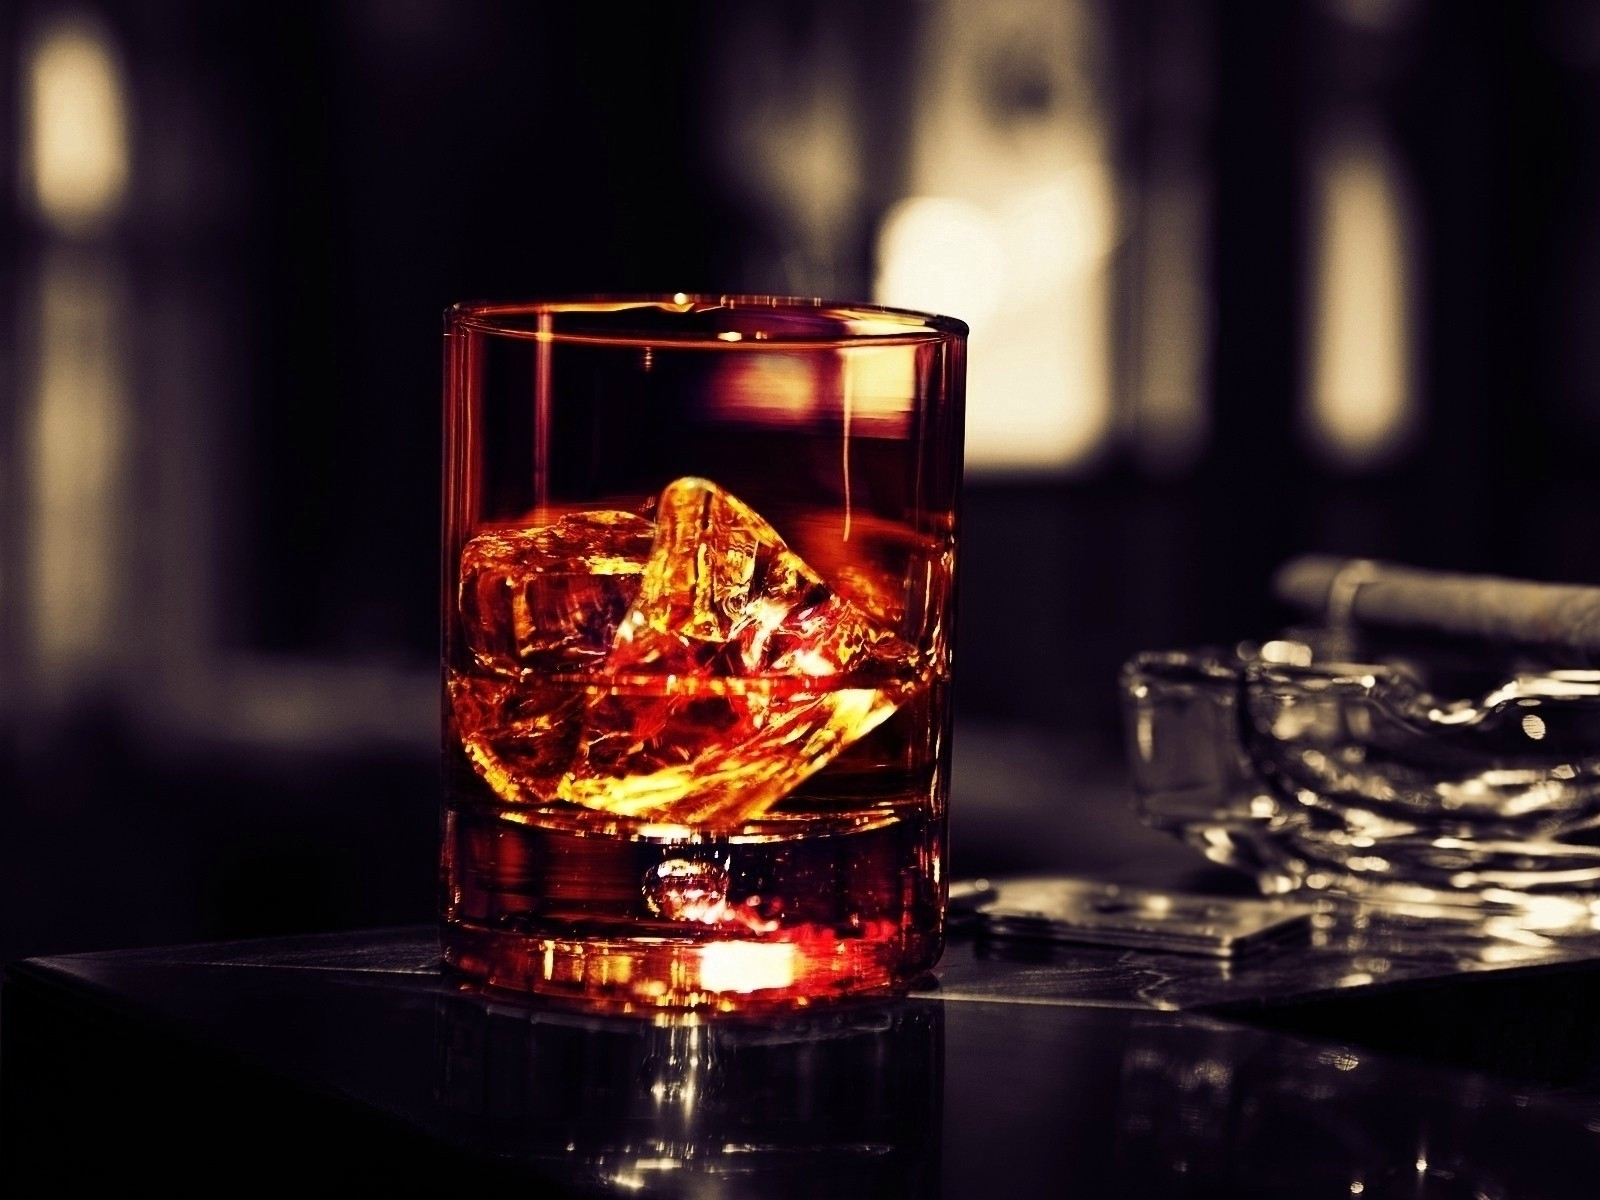 left govt new liquor policy launched today roadside beverage shop ban sc dismissed kerala plea foreign liquor price hike in kerala